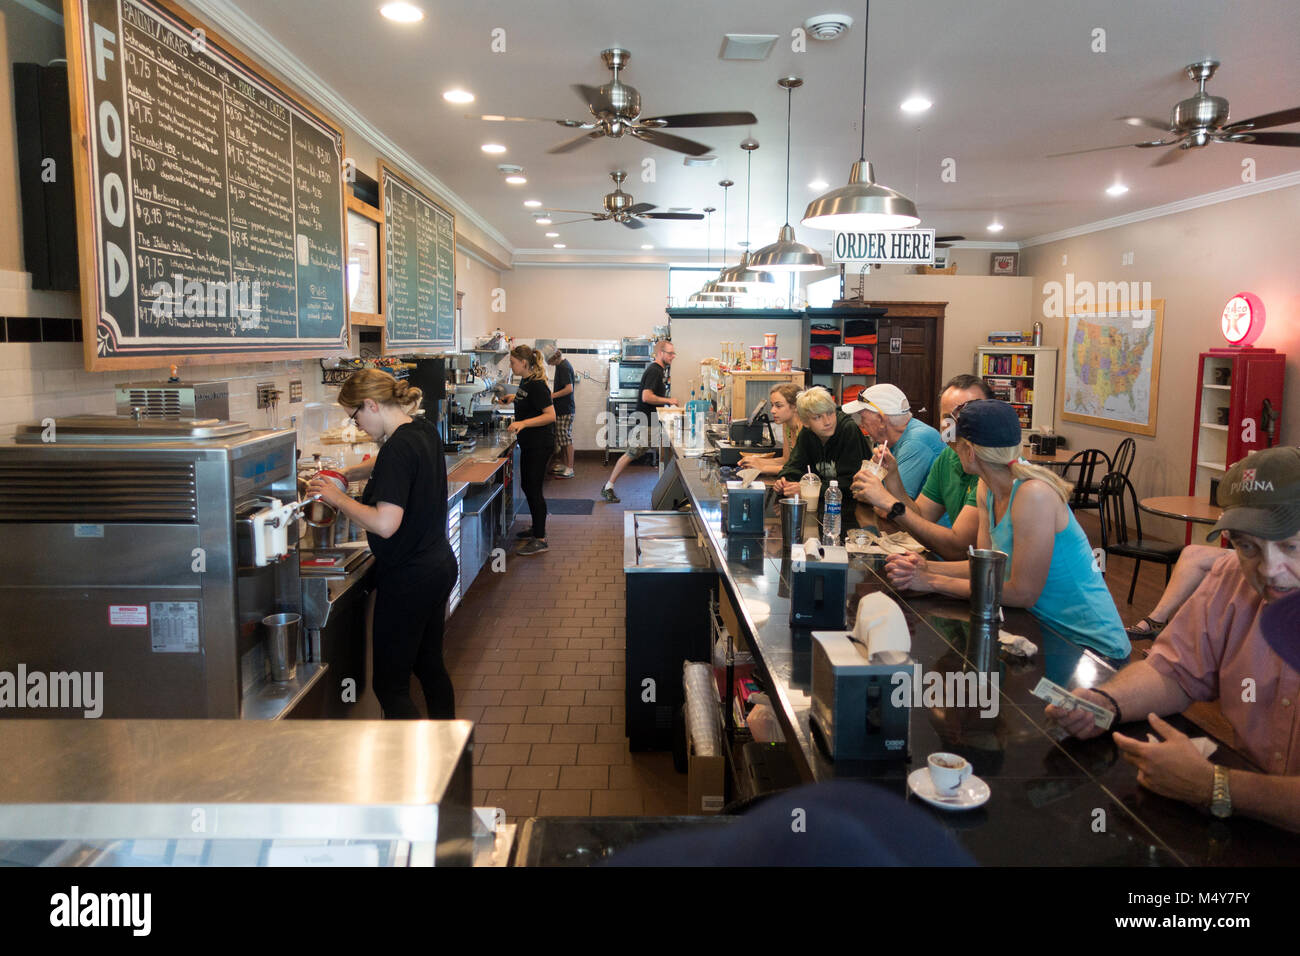 Workers preparing coffee and ice cream goodies for customers enjoying themselves at the Justice Two Coffeehouse - Stock Image